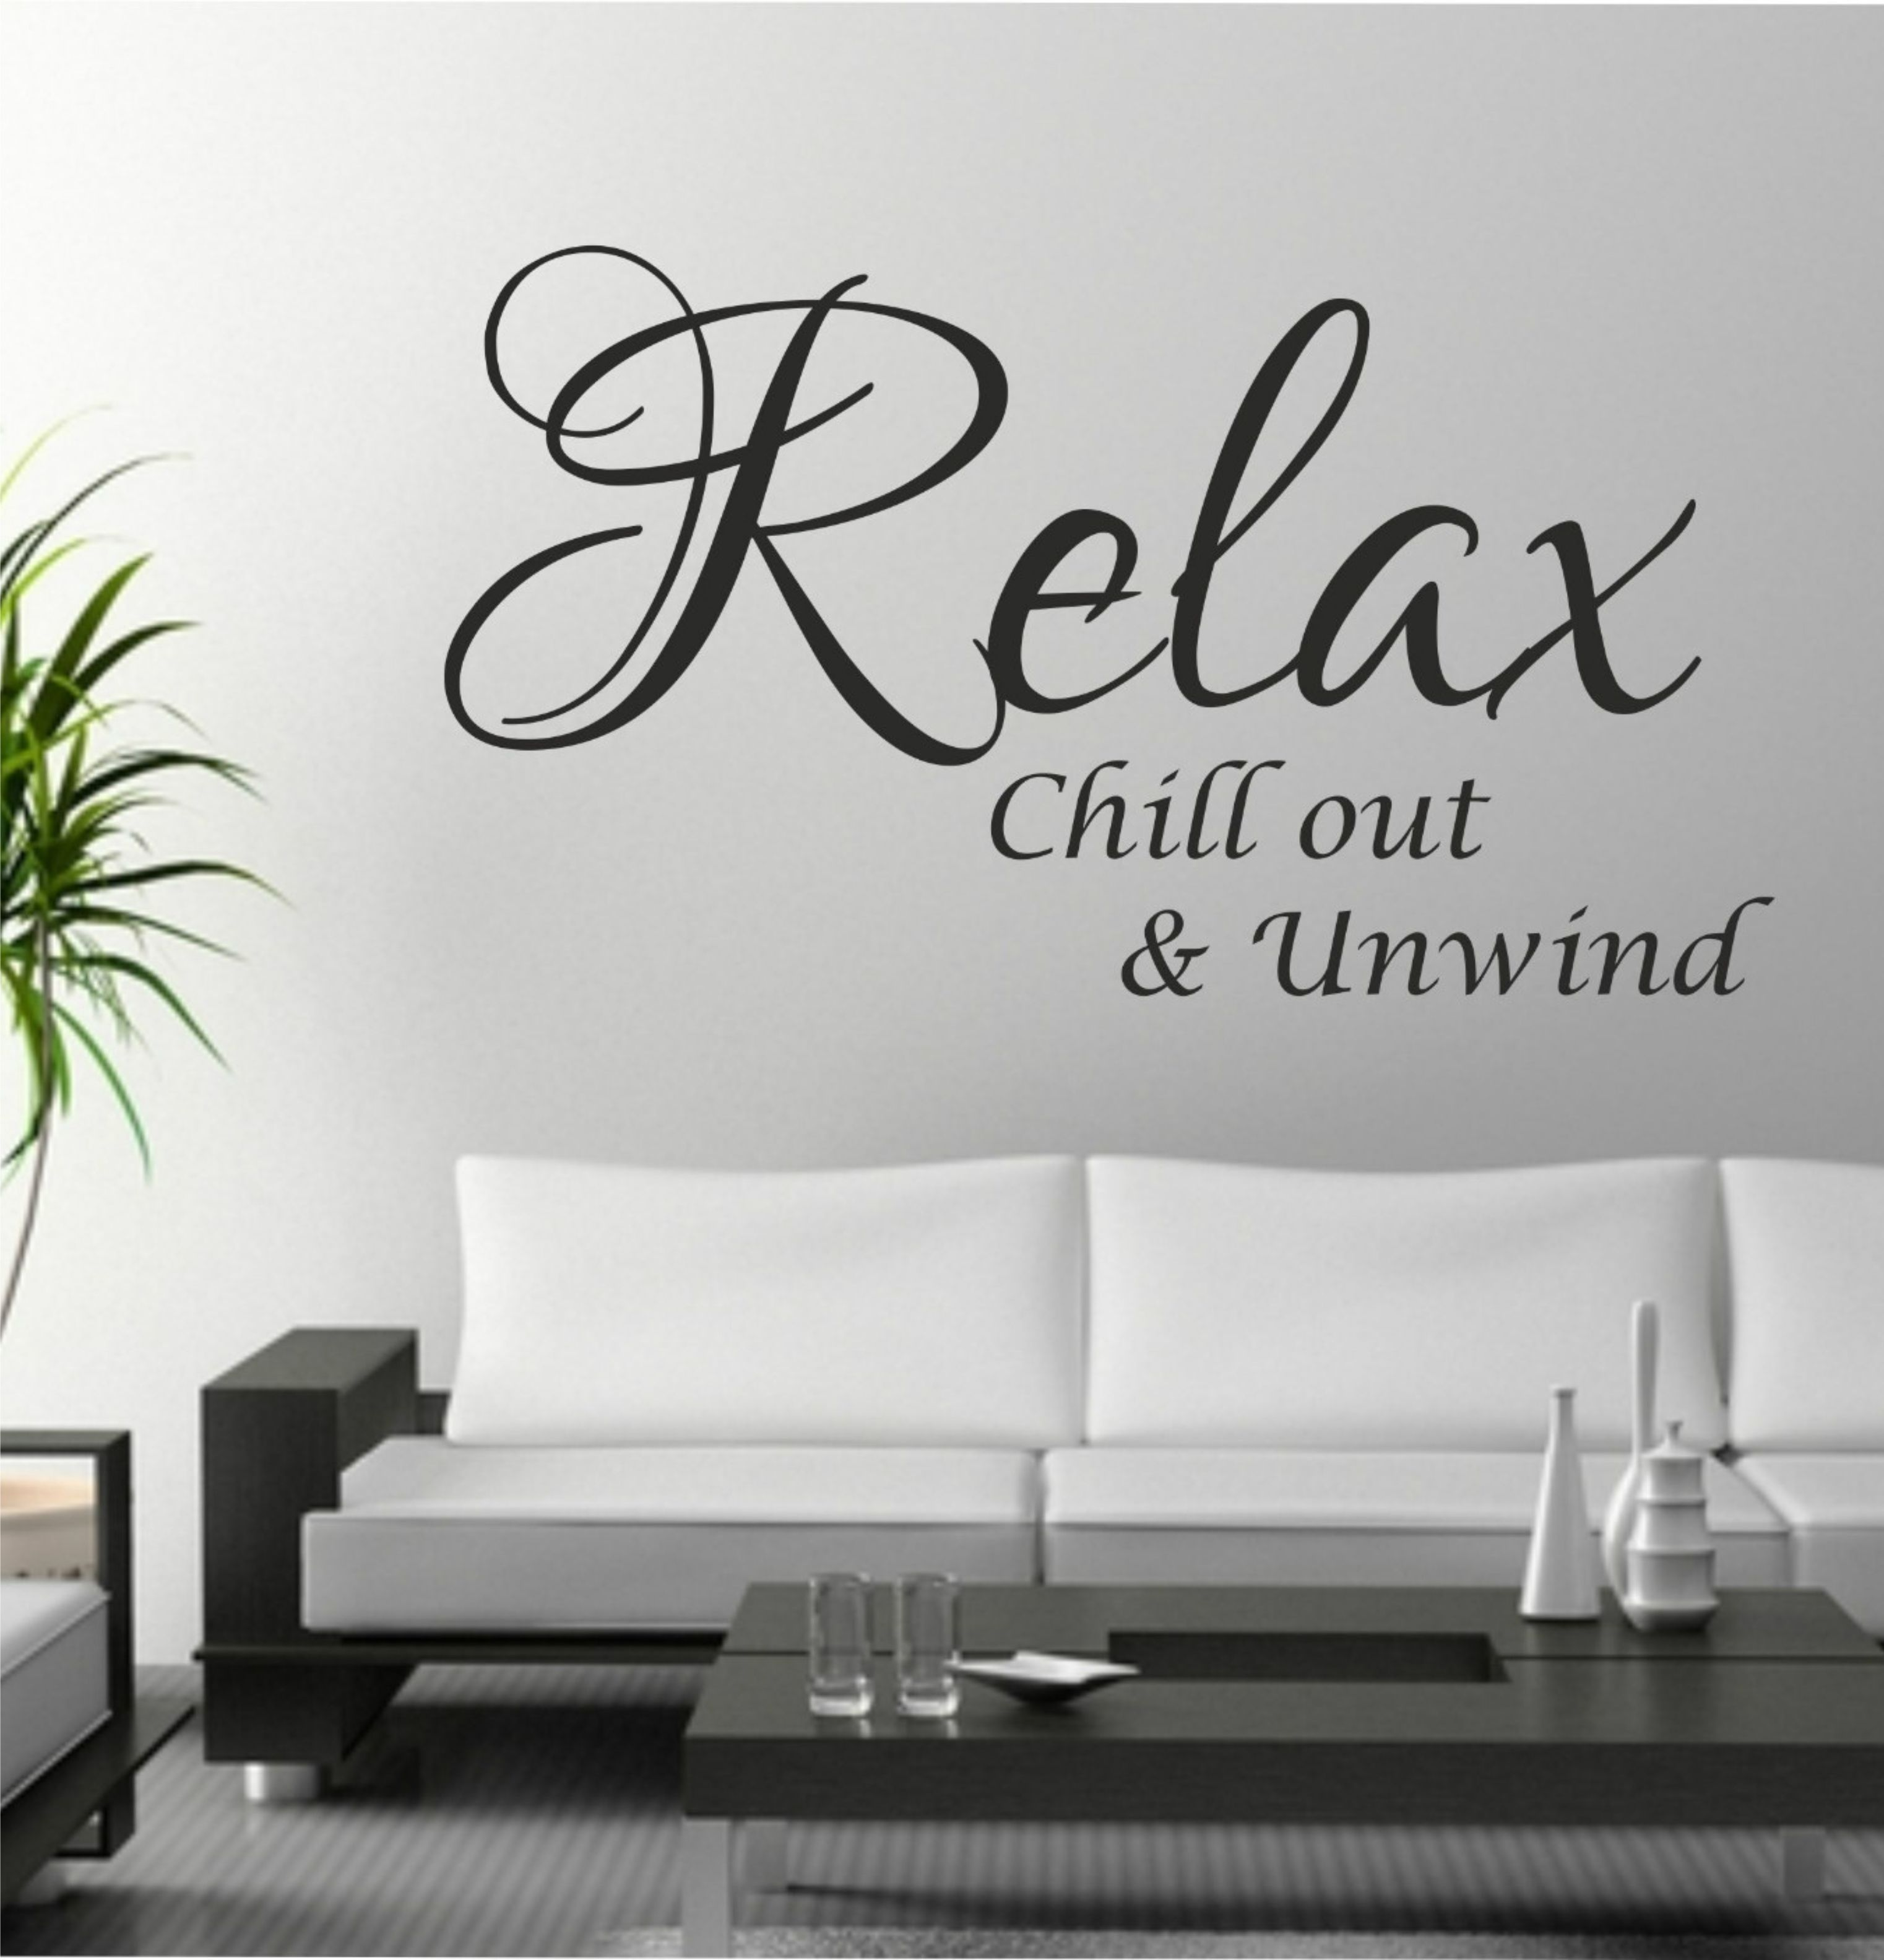 Quotescom: Unwind And Chill Out Quotes. QuotesGram